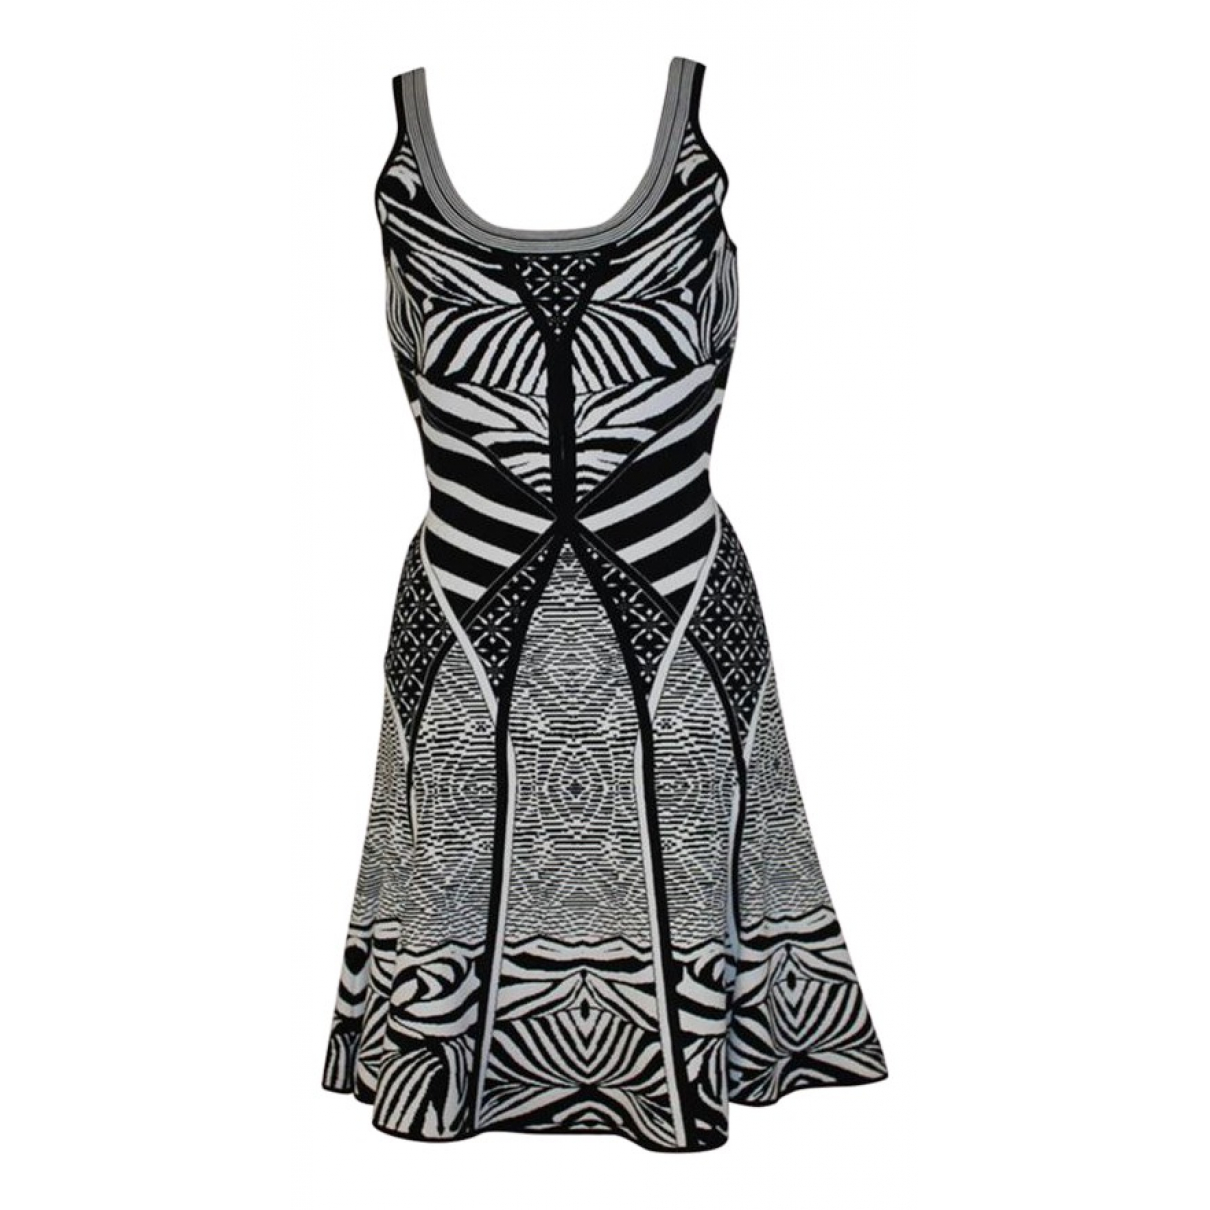 Diane Von Furstenberg N dress for Women S International